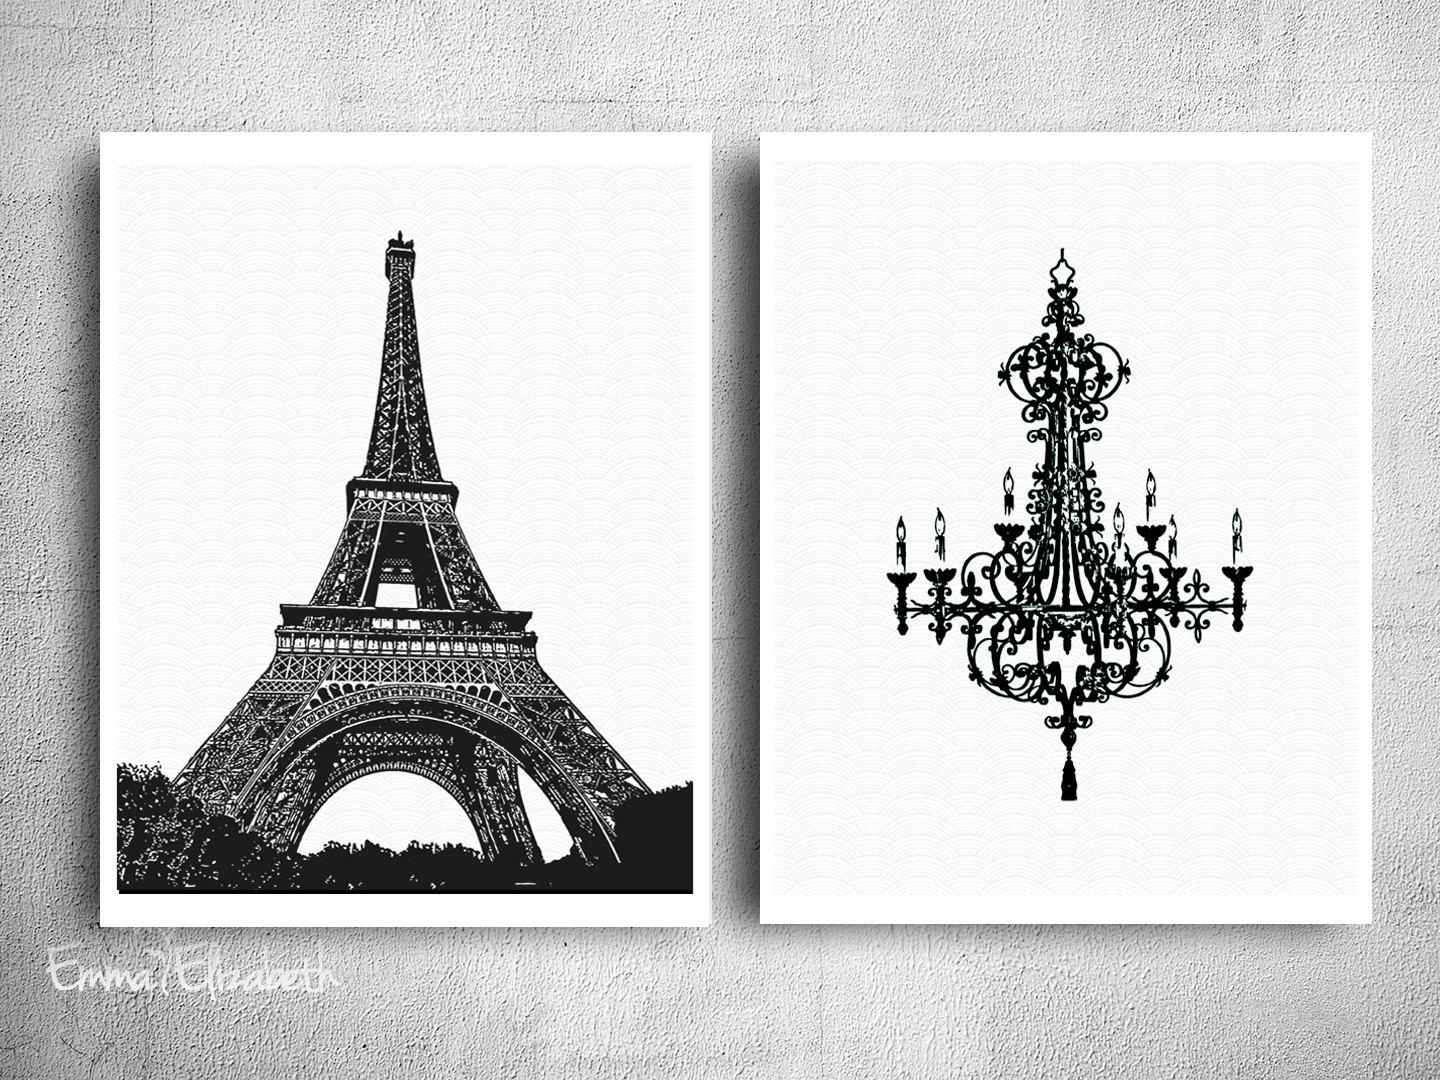 Chic Wall Decor Black White Poster Print Simple Clean Art French Regarding Eiffel Tower Wall Hanging Art (View 20 of 20)